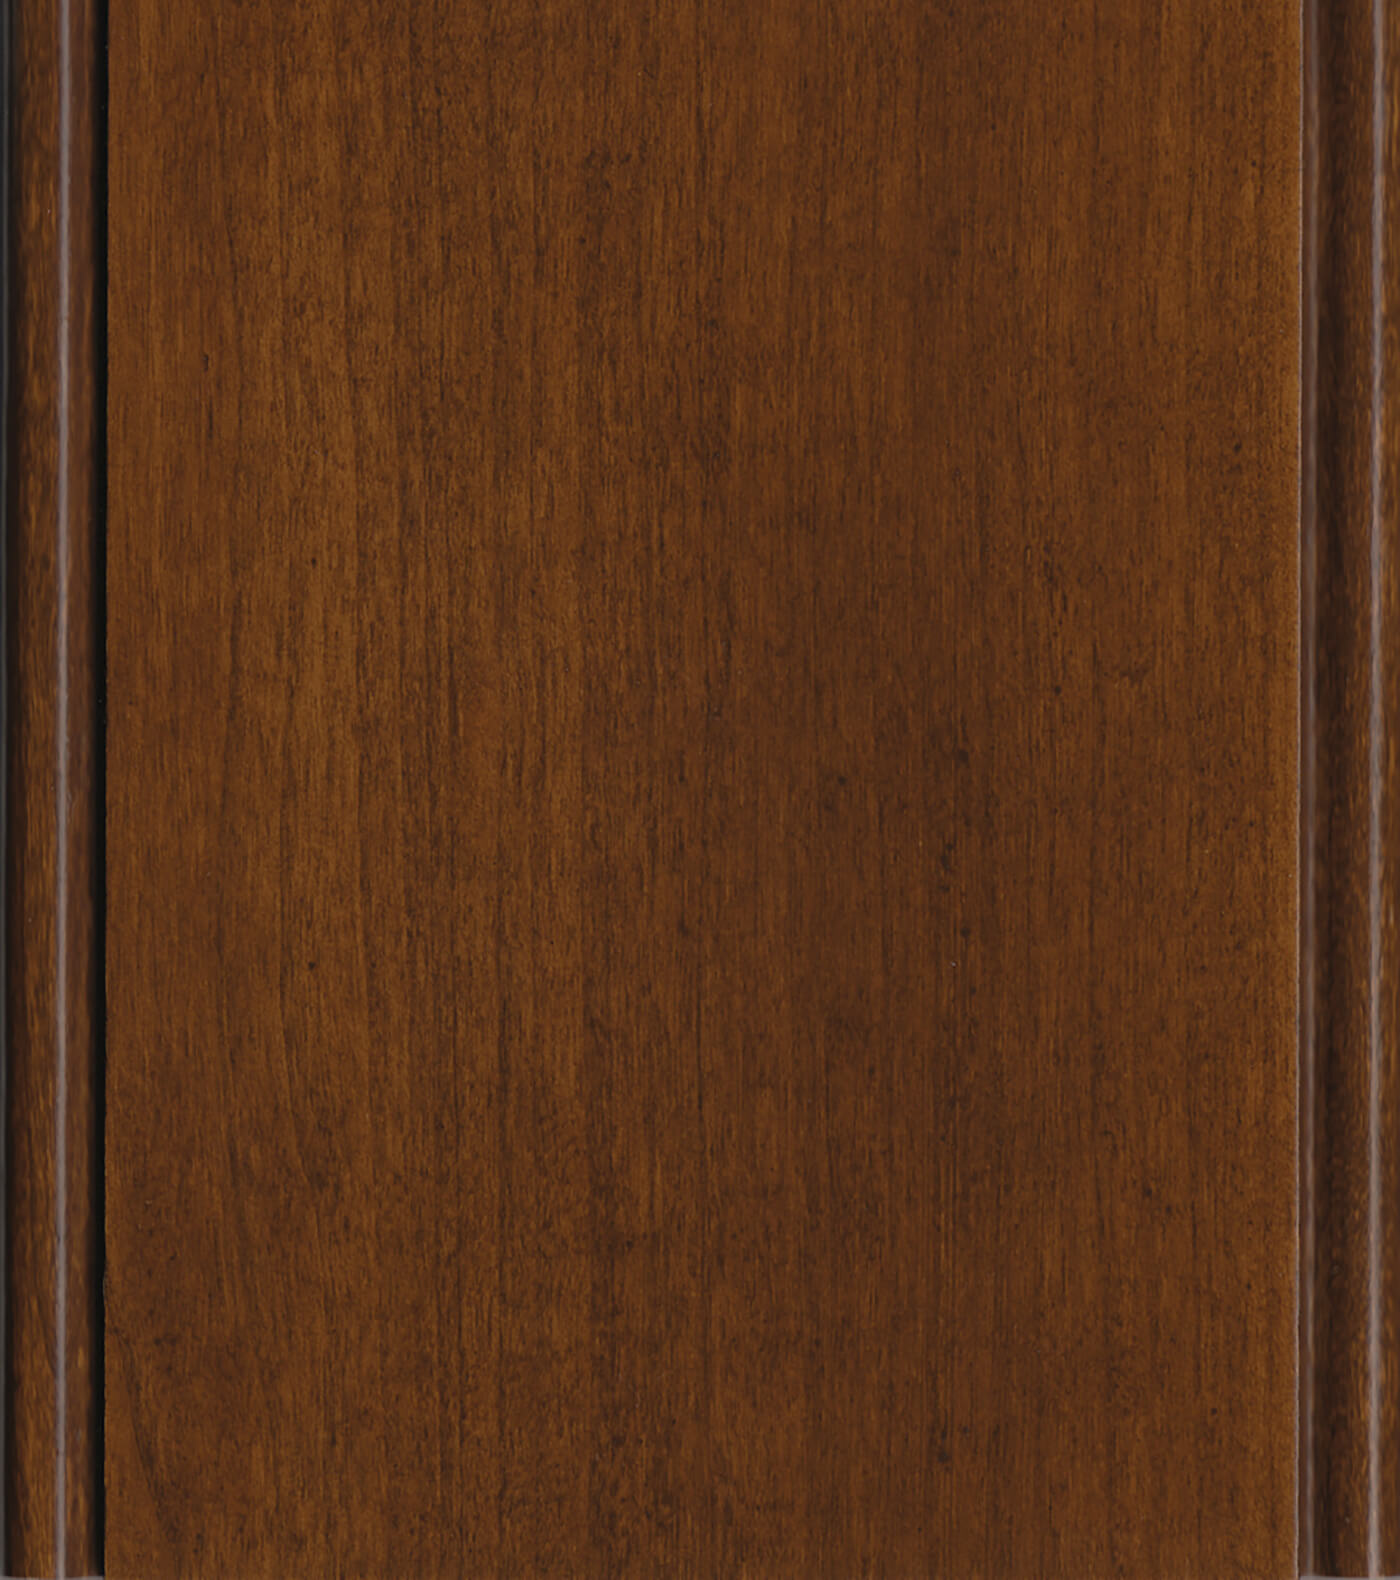 Allspice Stain on Cherry